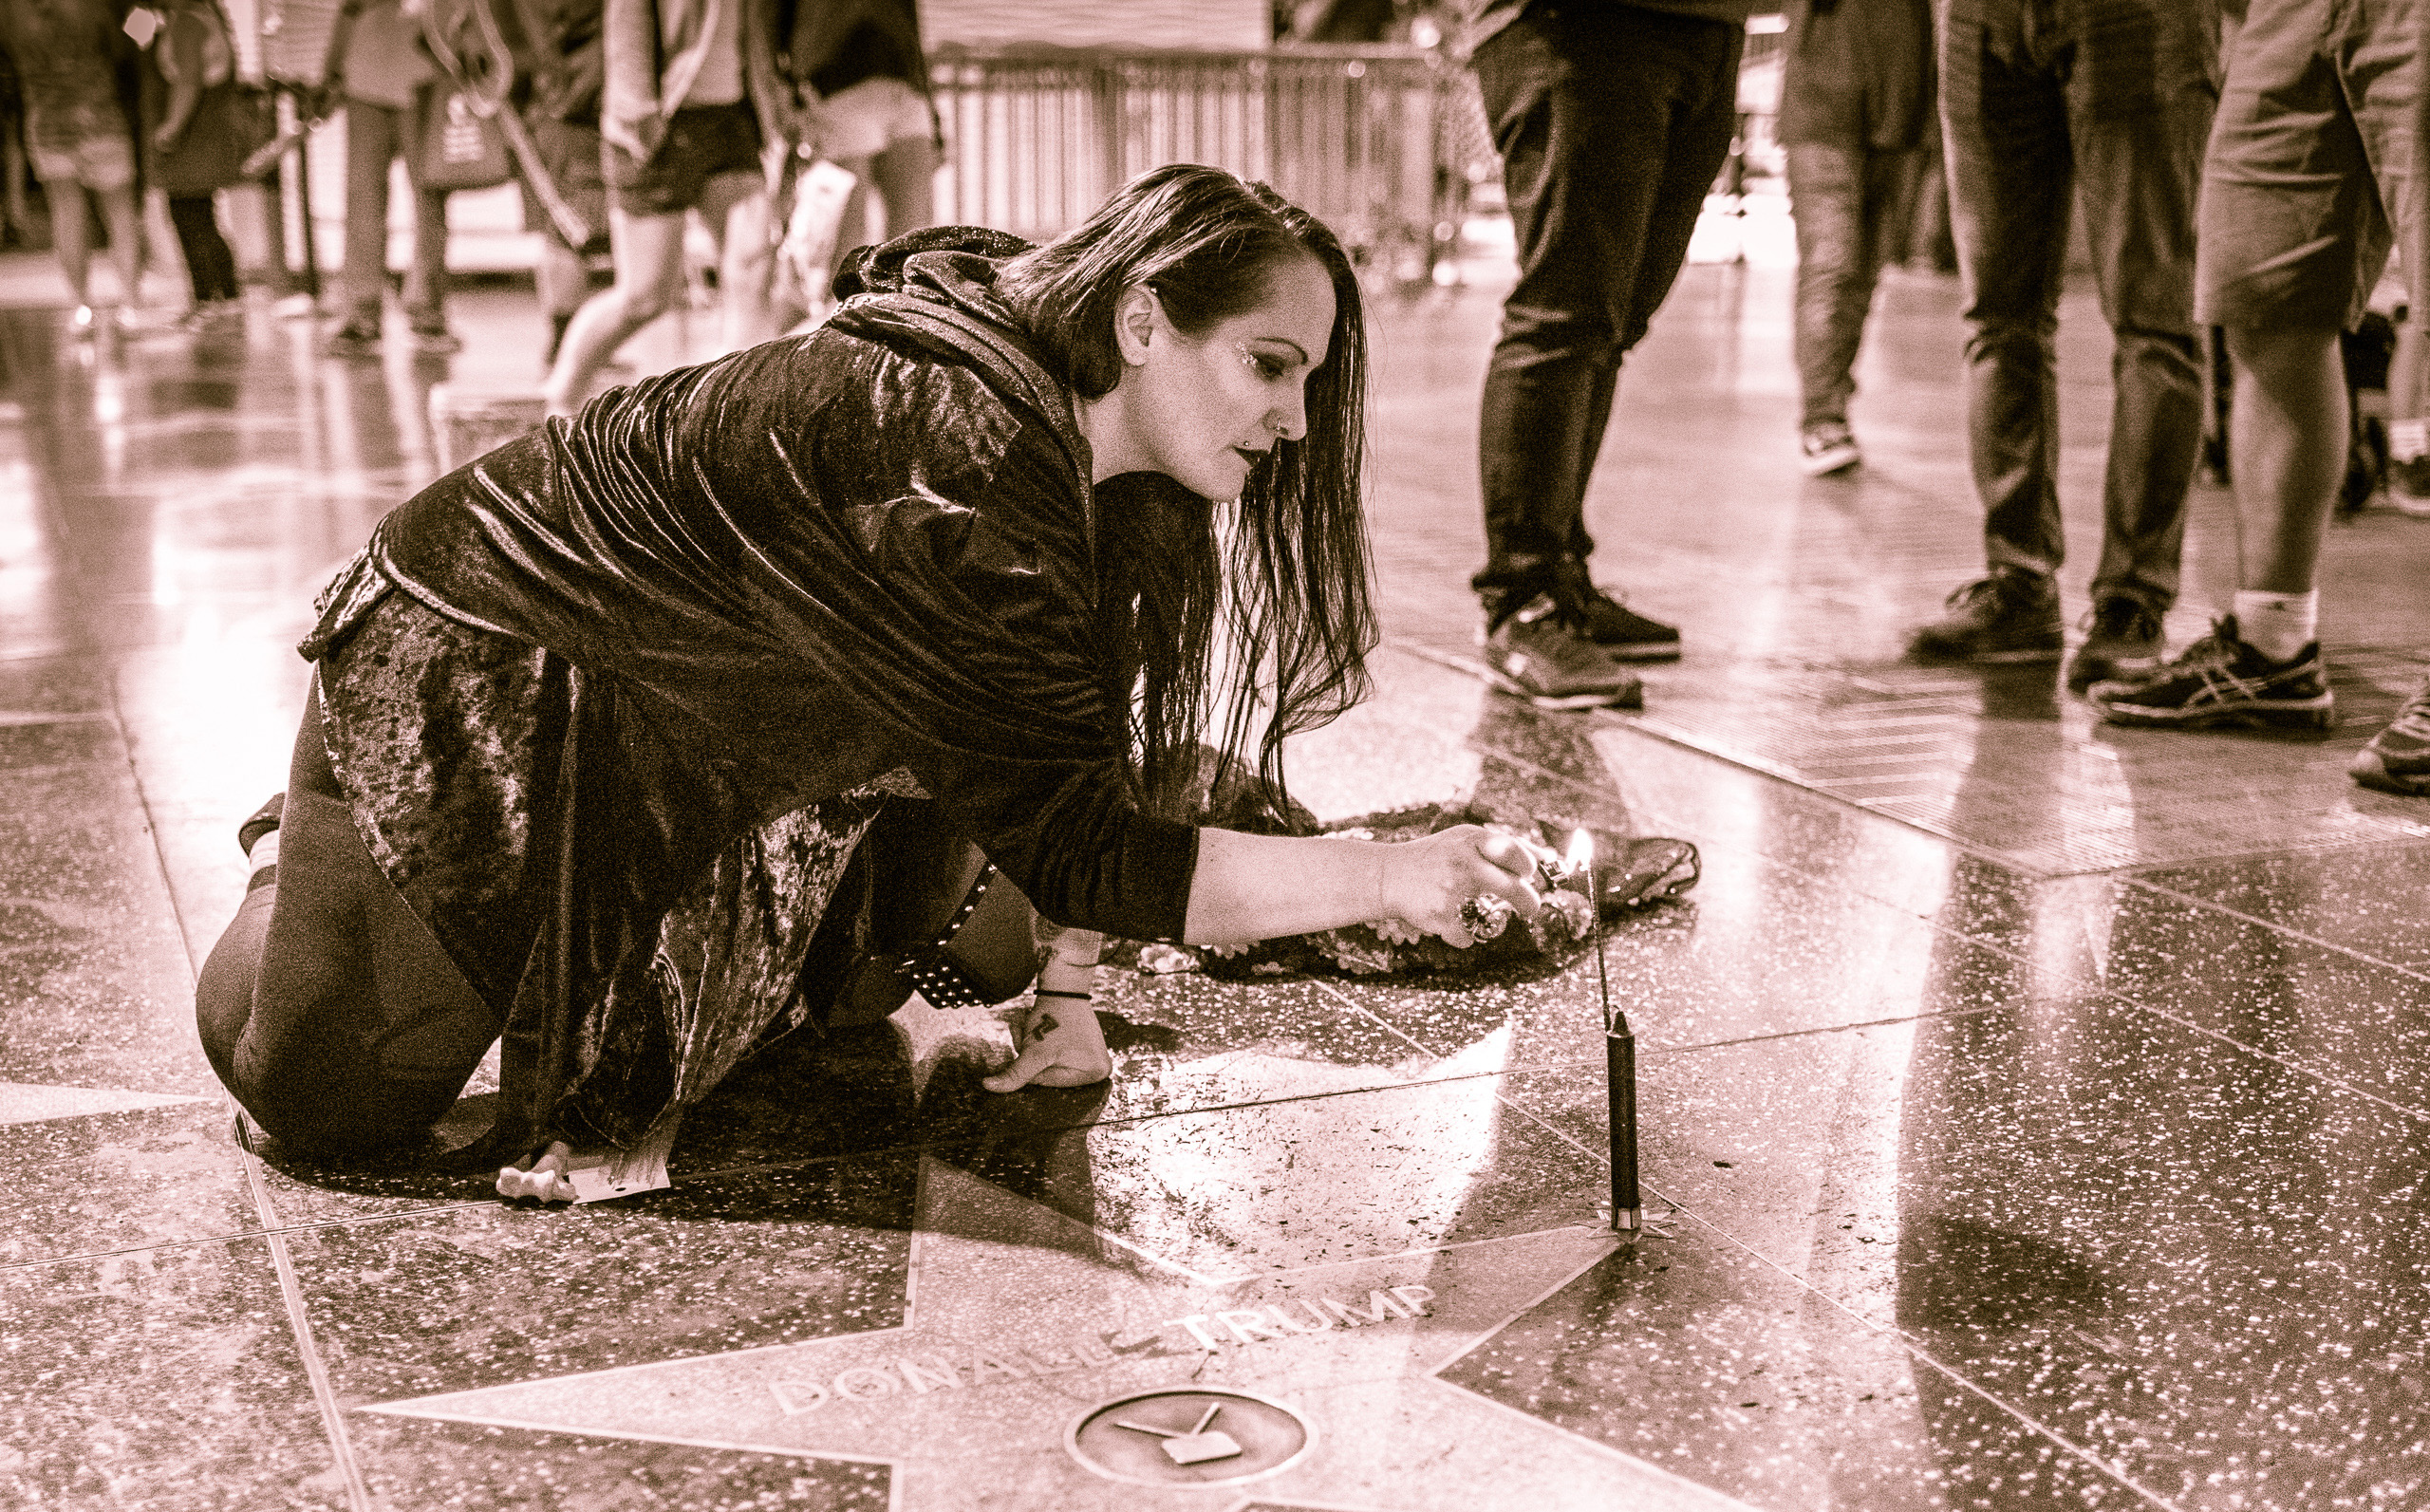 Erin Leigh in a flowing robe kneels at Donald Trump's Star on Hollywood Blvd and lights a candle on one of the points of the star